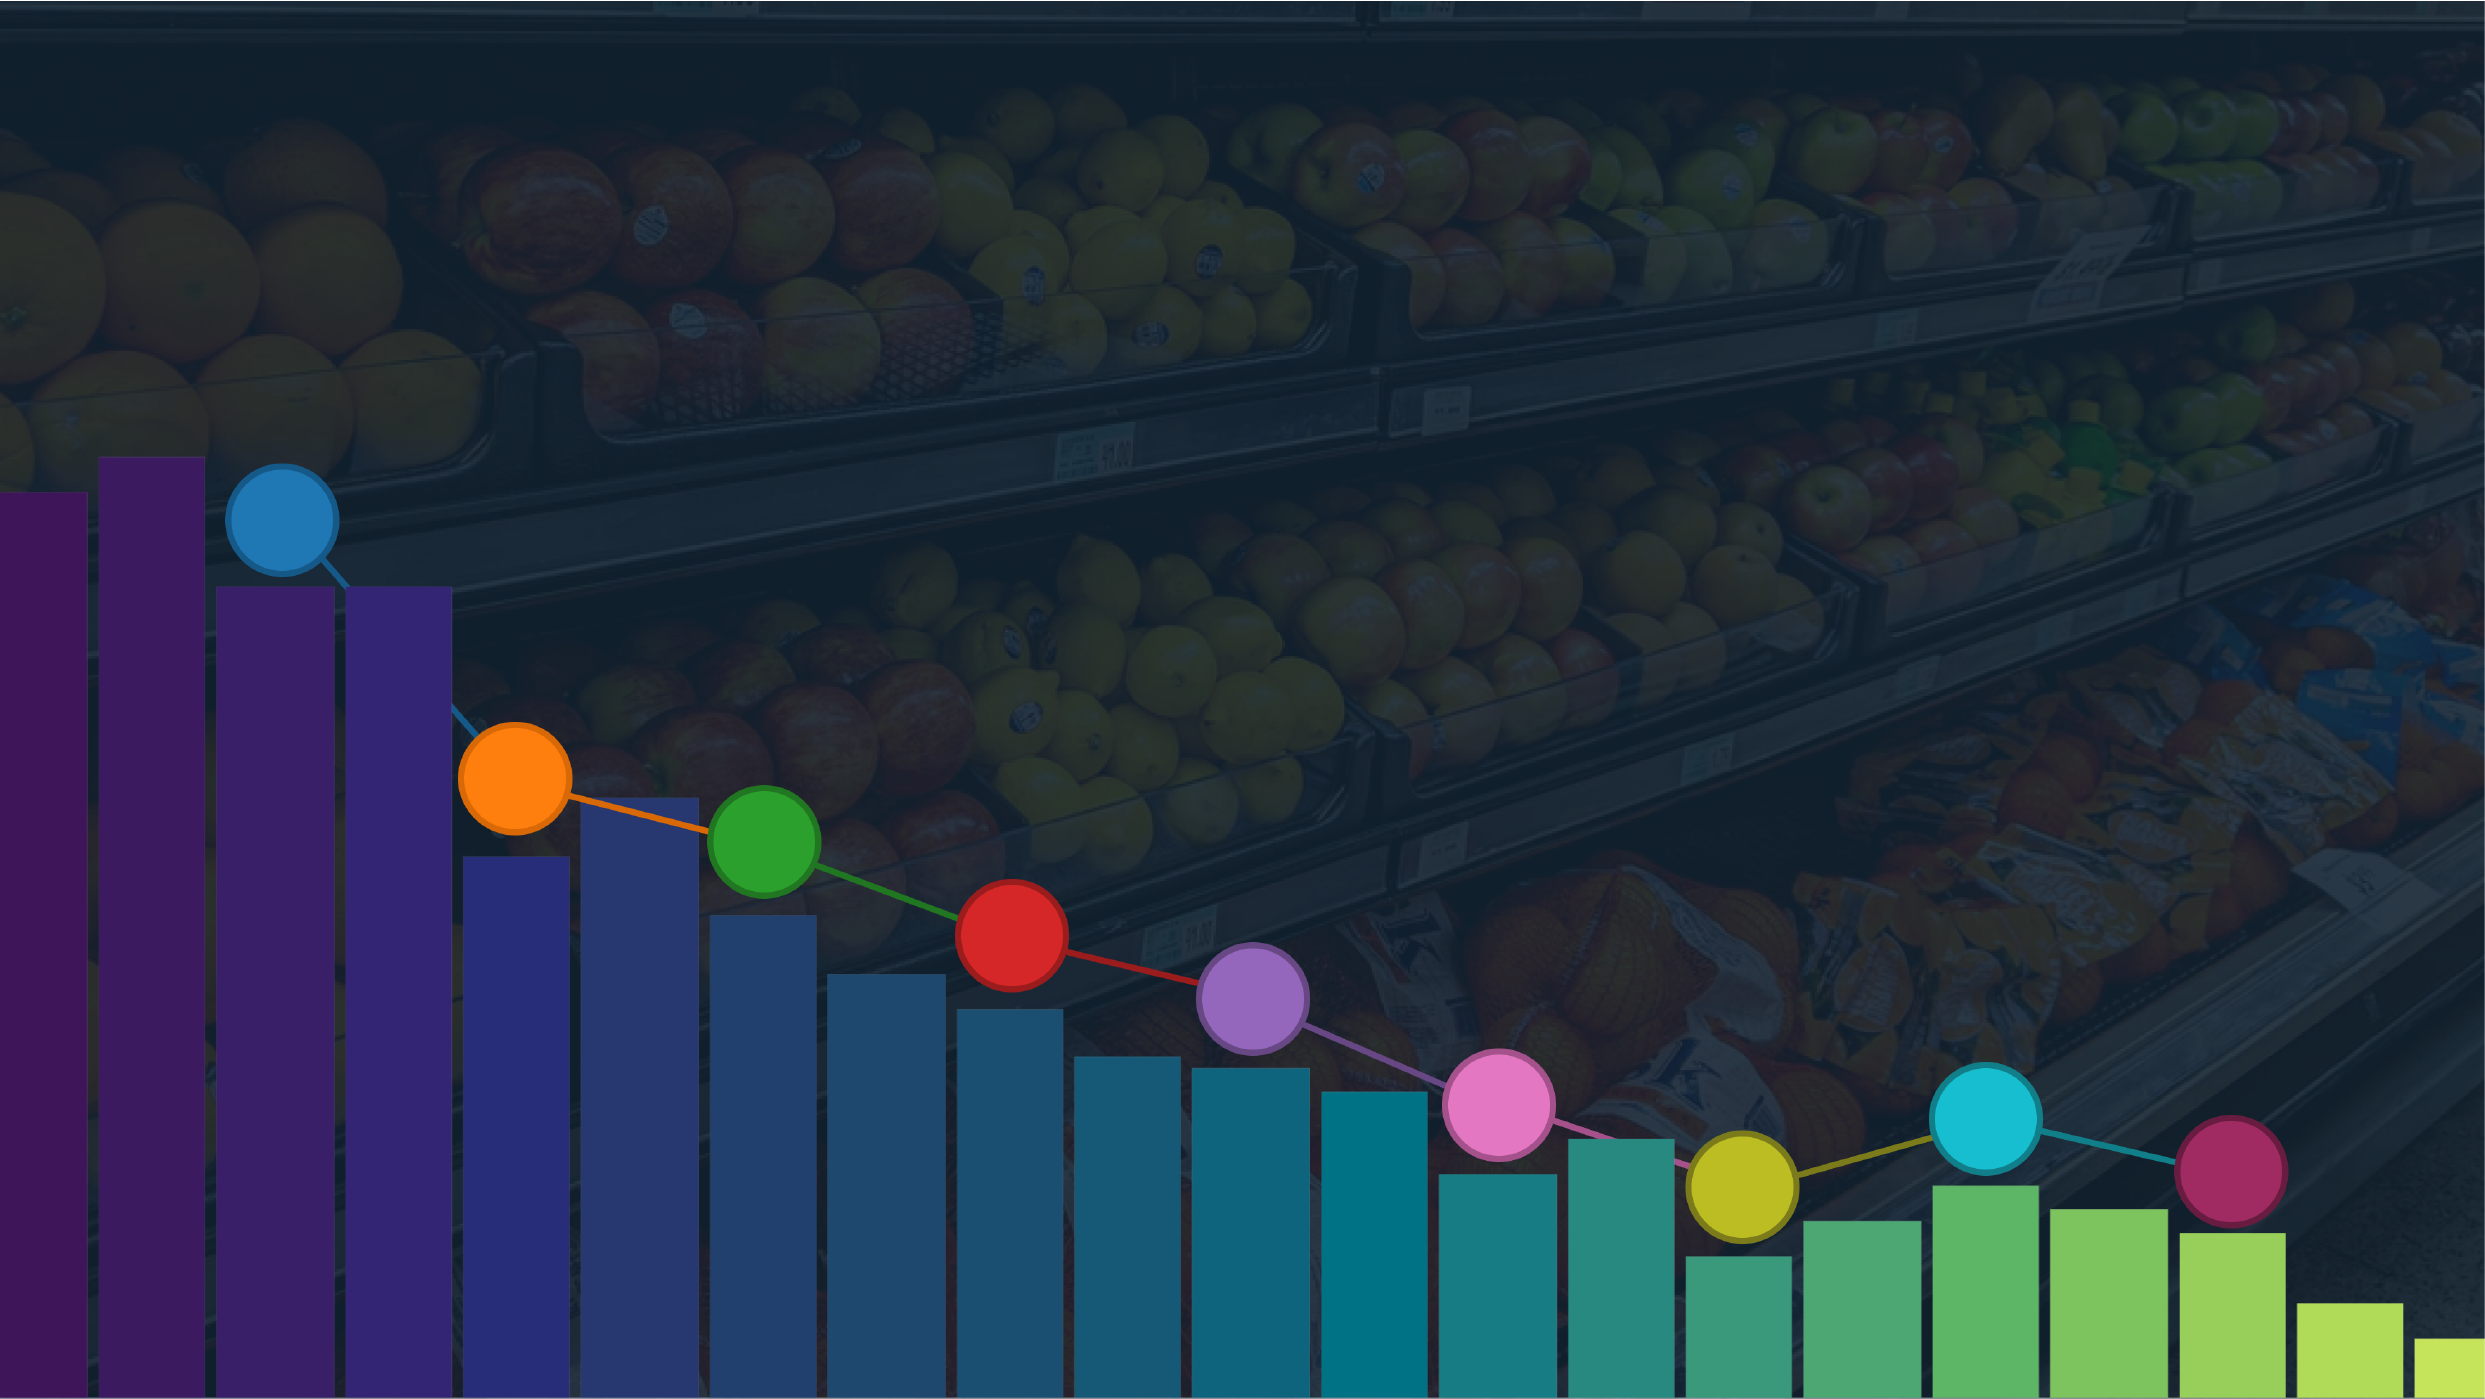 Our team clustered 1000 supermarket sales in order to segment customers according to their buying habits. Our market segmentation analysis uses data on the demographics, income and geography of customers to identify key buyer personas and inform marketing strategies and campaigns.